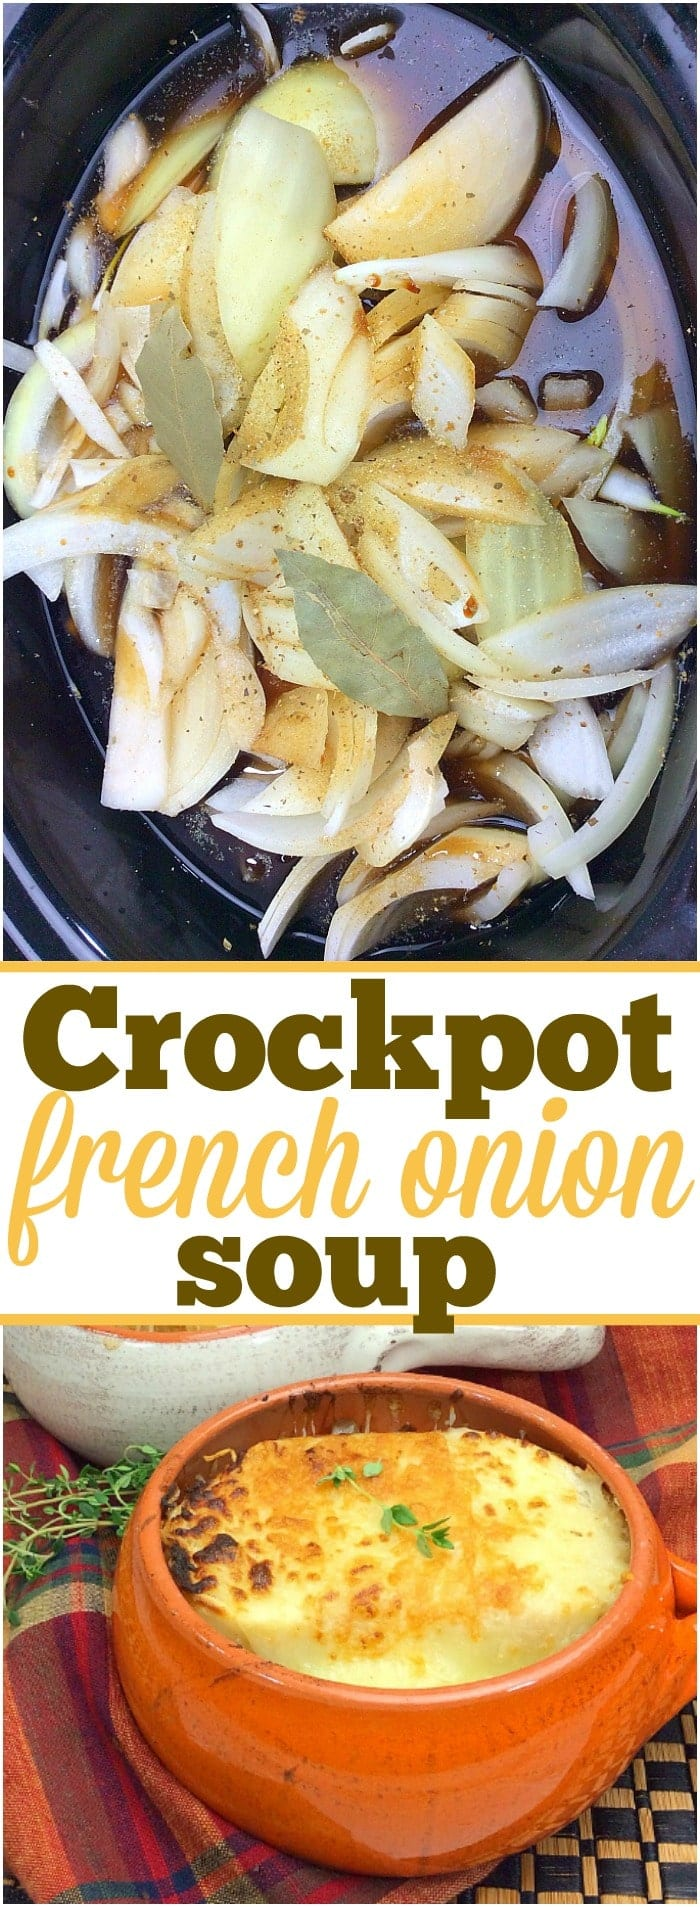 This easy crockpot french onion soup recipe takes just 10 minutes to prepare! The cheapest slow cooker soup that tastes amazing and only needs a few ingredients to make. Let it cook by itself all day and have a complete comfort food dinner ready in the evening. Rich french onion smothered in cheese is the best. #crockpot #slowcooker #frenchonion #soup #easy #simple #cheap #soups #dinner